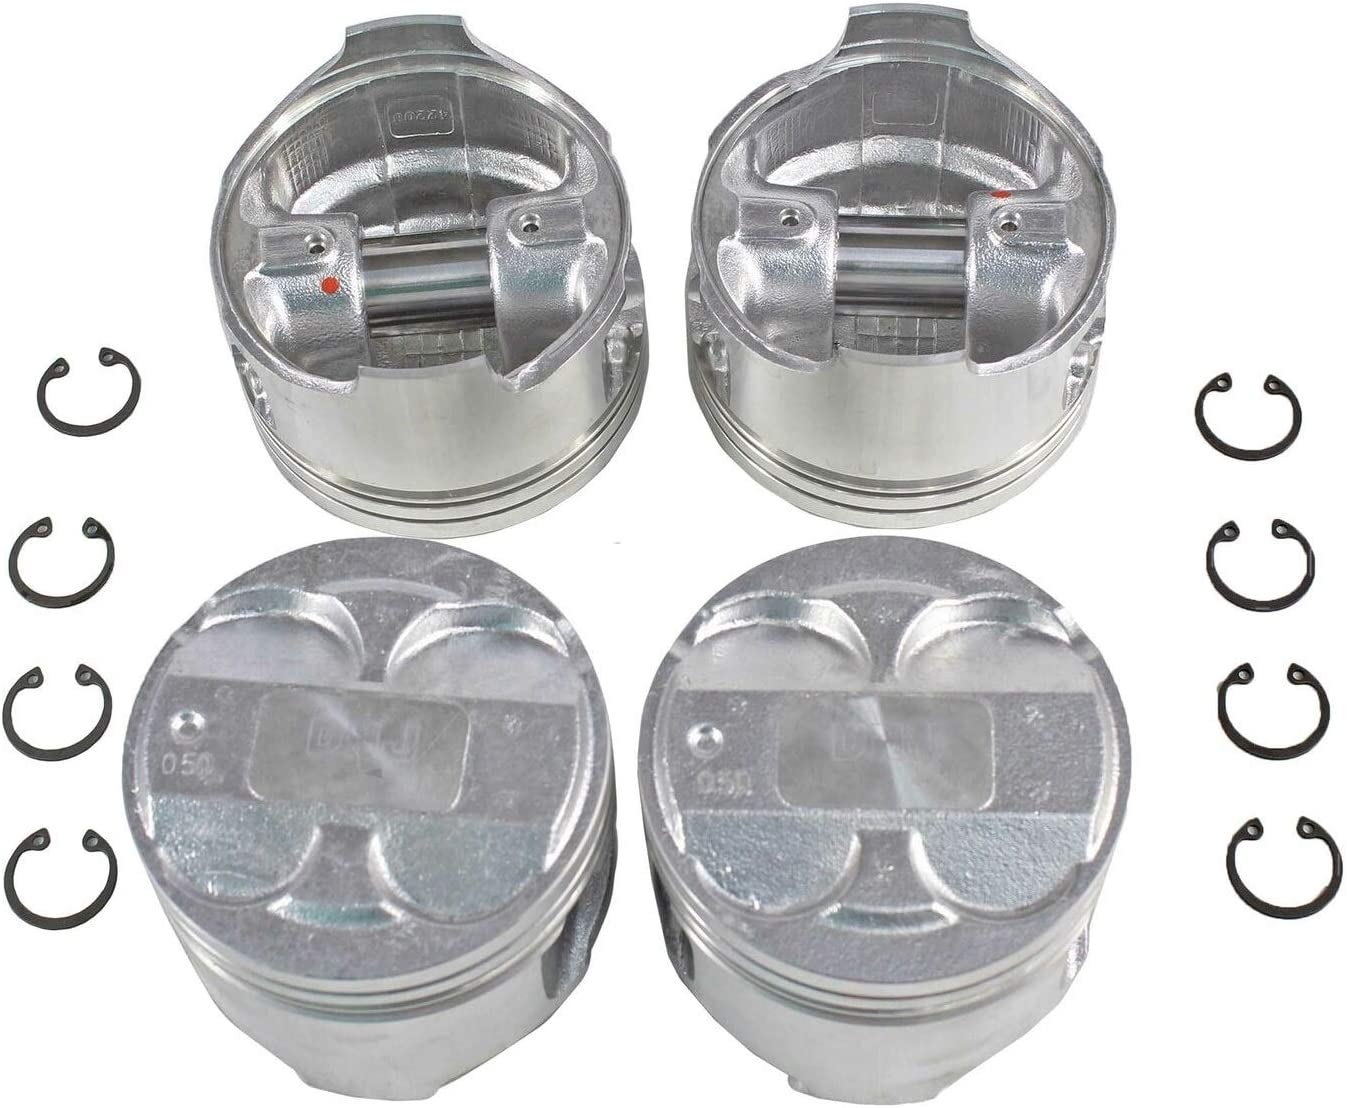 4 Pcs of Award P430A.20 Oversize Compatible Complete with Max 83% OFF Set Piston